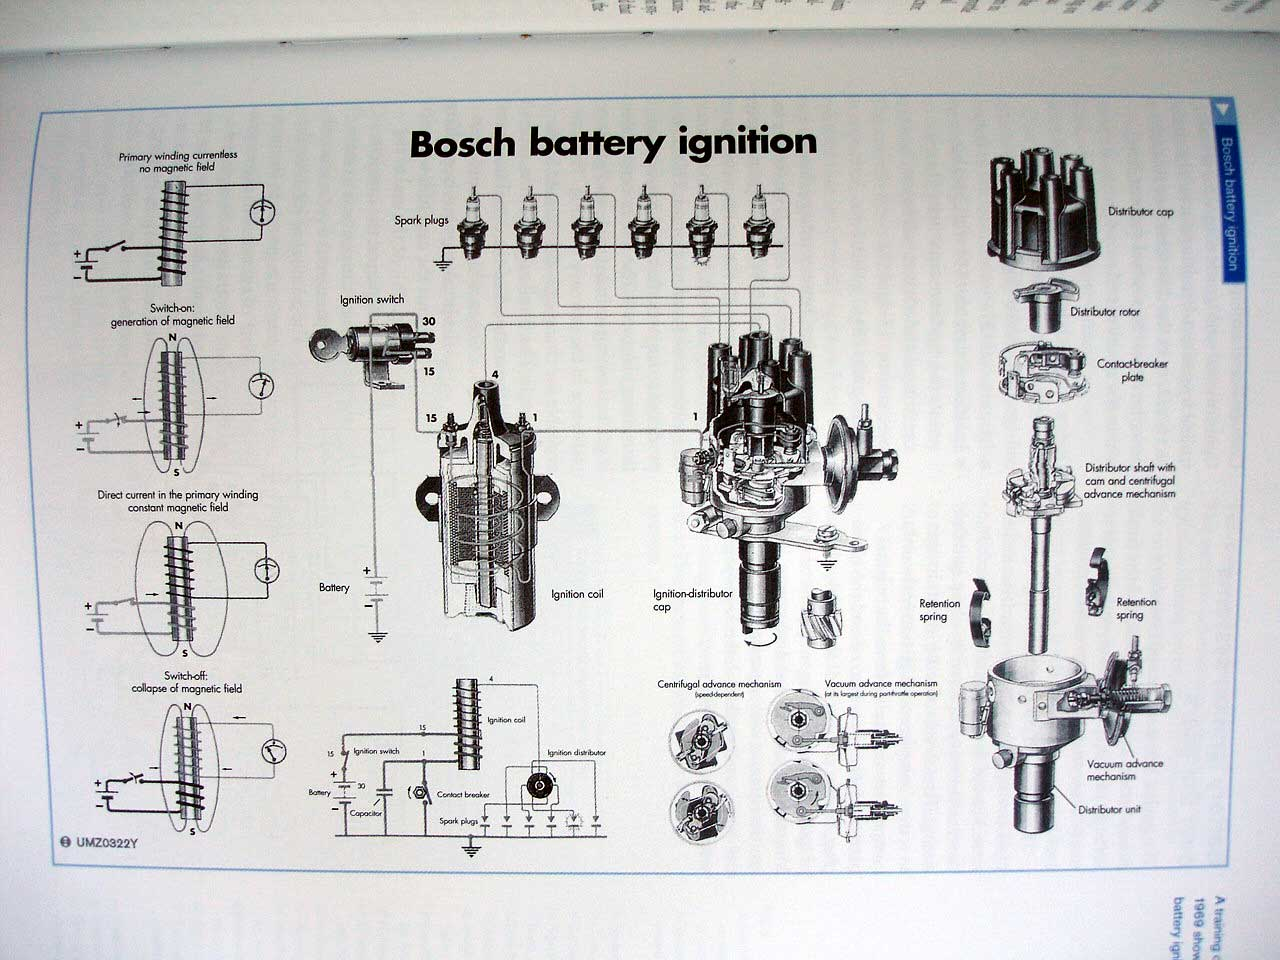 Vw Distributor Wiring Diagram Schemes Furthermore 1970 Beetle Engine Parts On Understanding The Ignition System Rh Ratwell Com Golf 1 Volkswagen